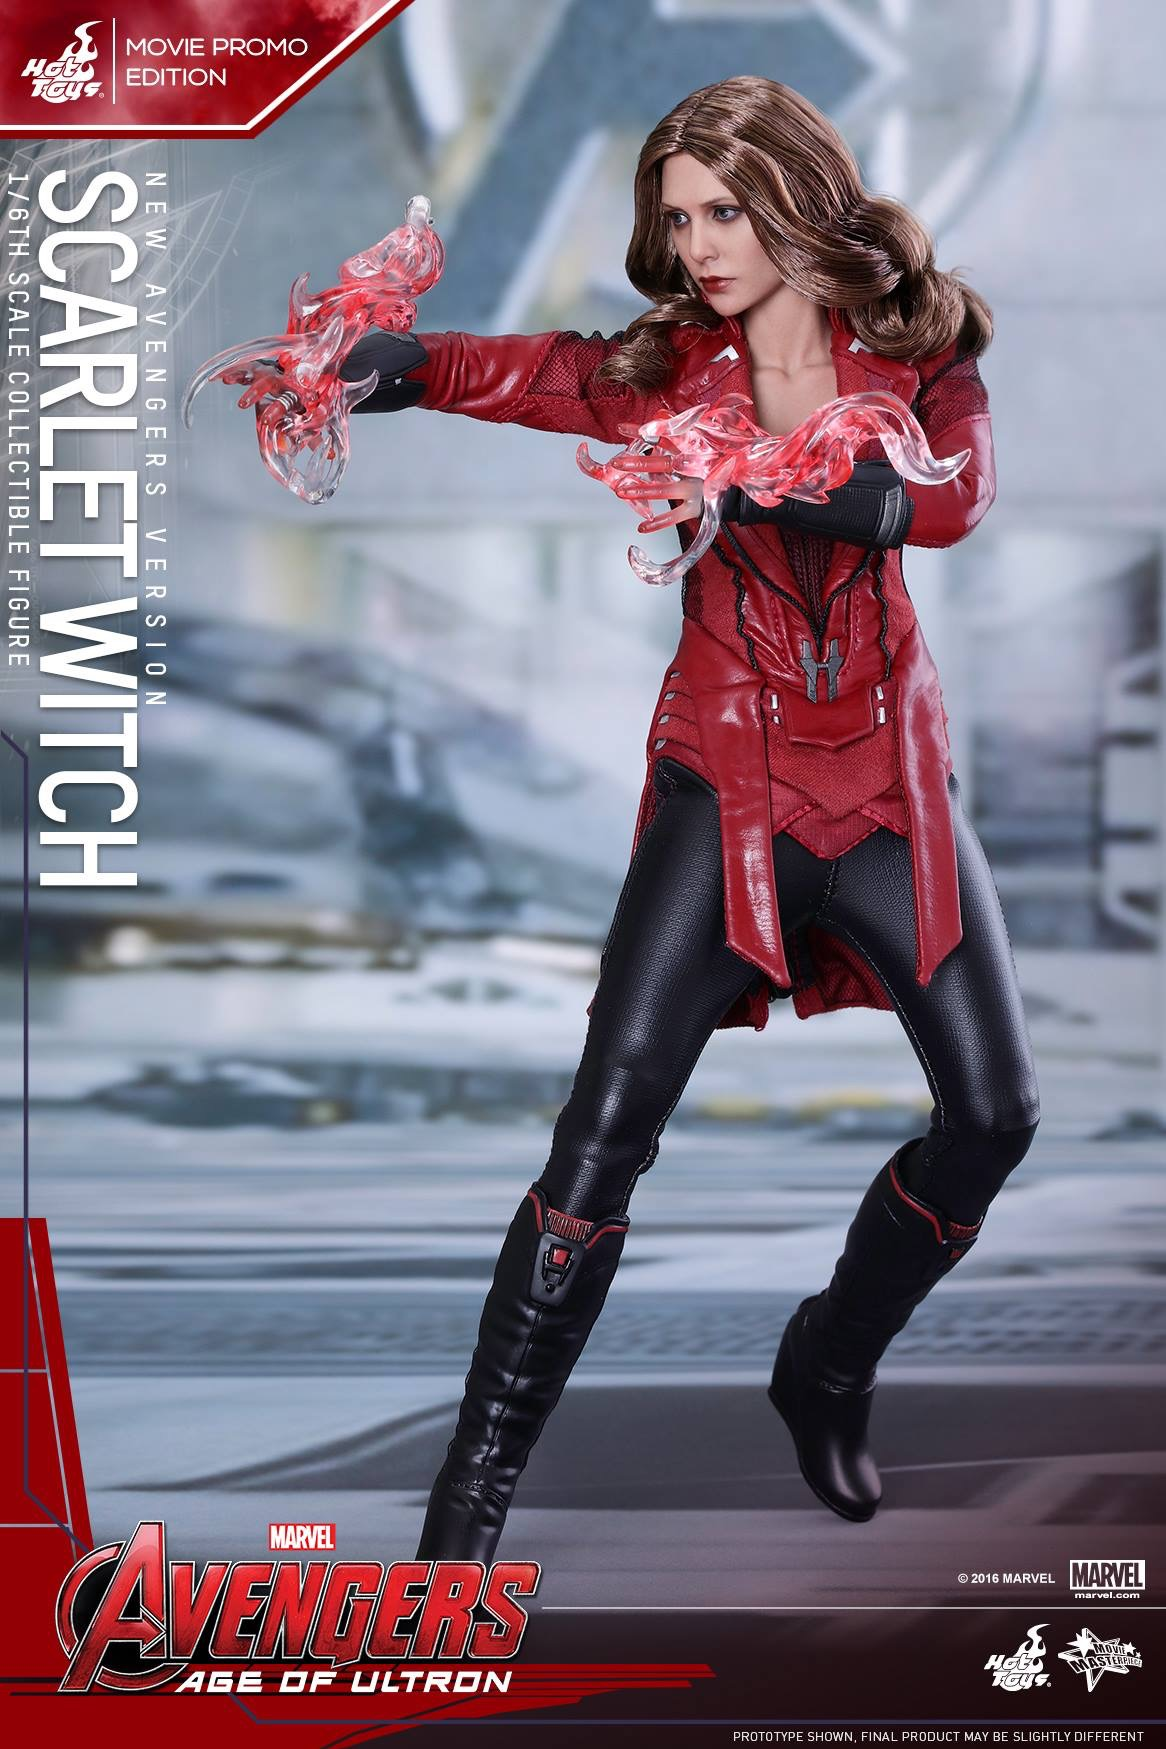 AVENGERS 2 : AGE OF ULTRON - SCARLET WITCH (MM$357) 160415024943318673